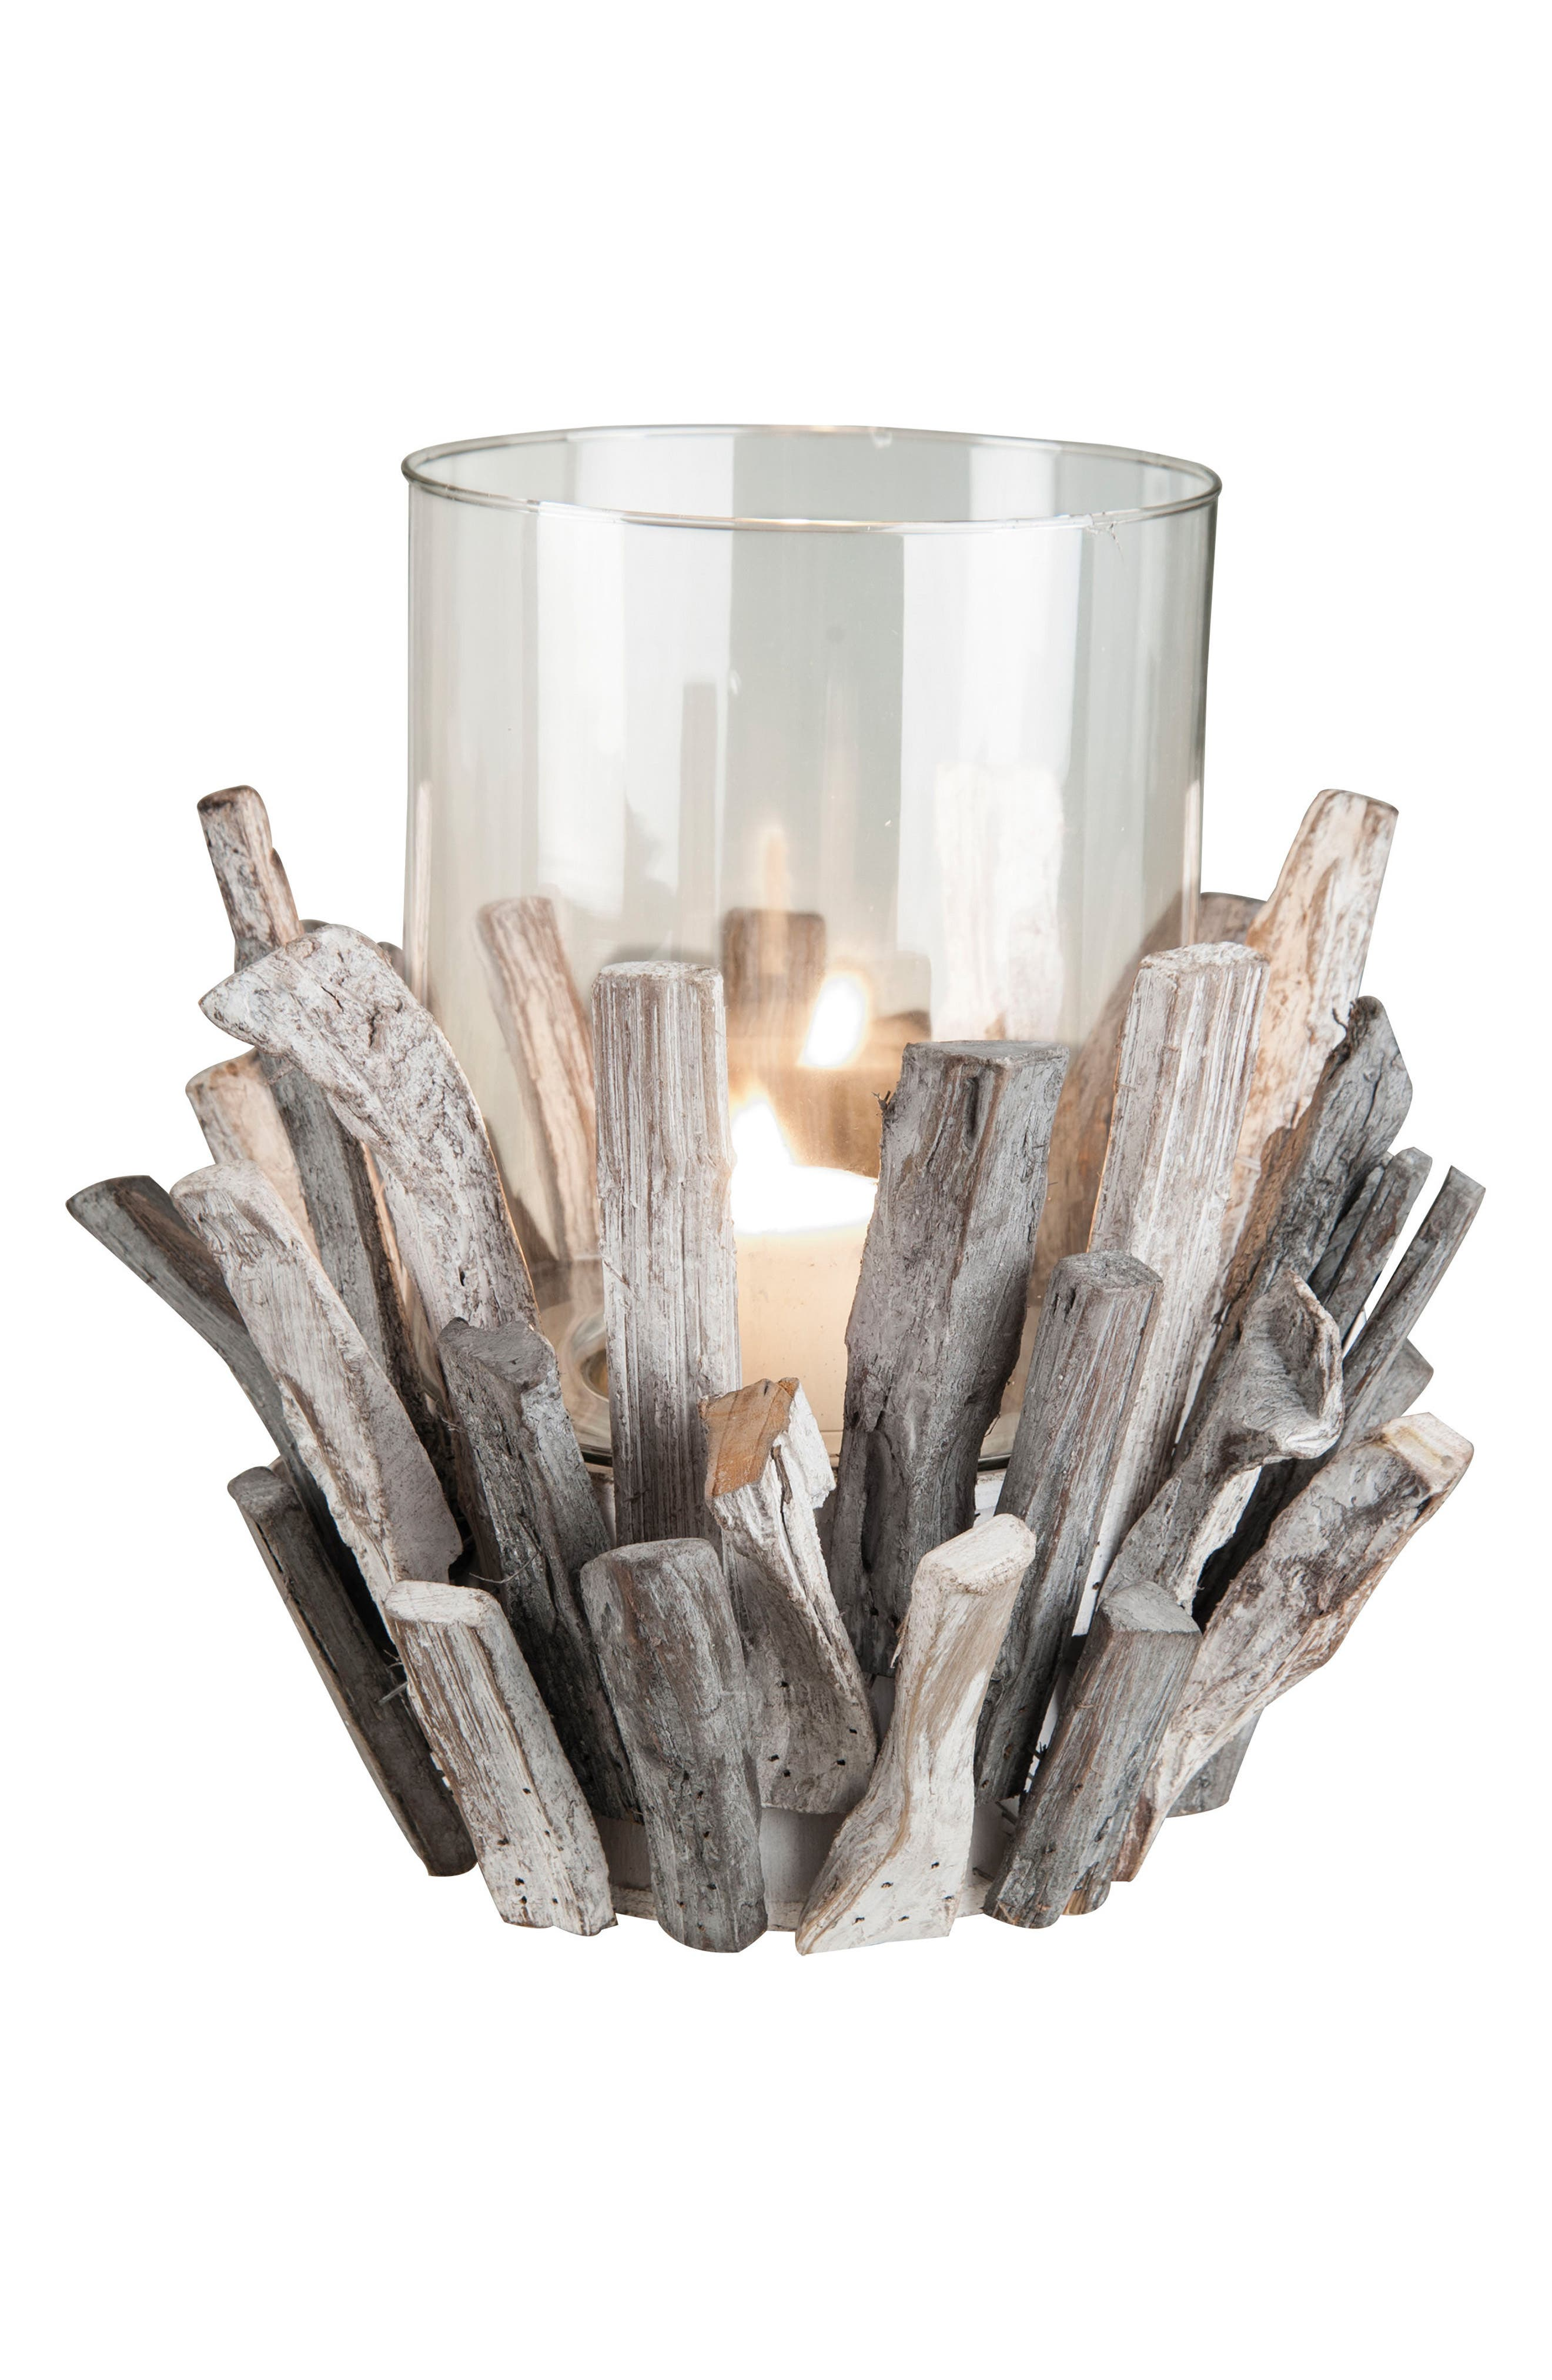 Main Image - Foreside Wood & Glass Candle Holder